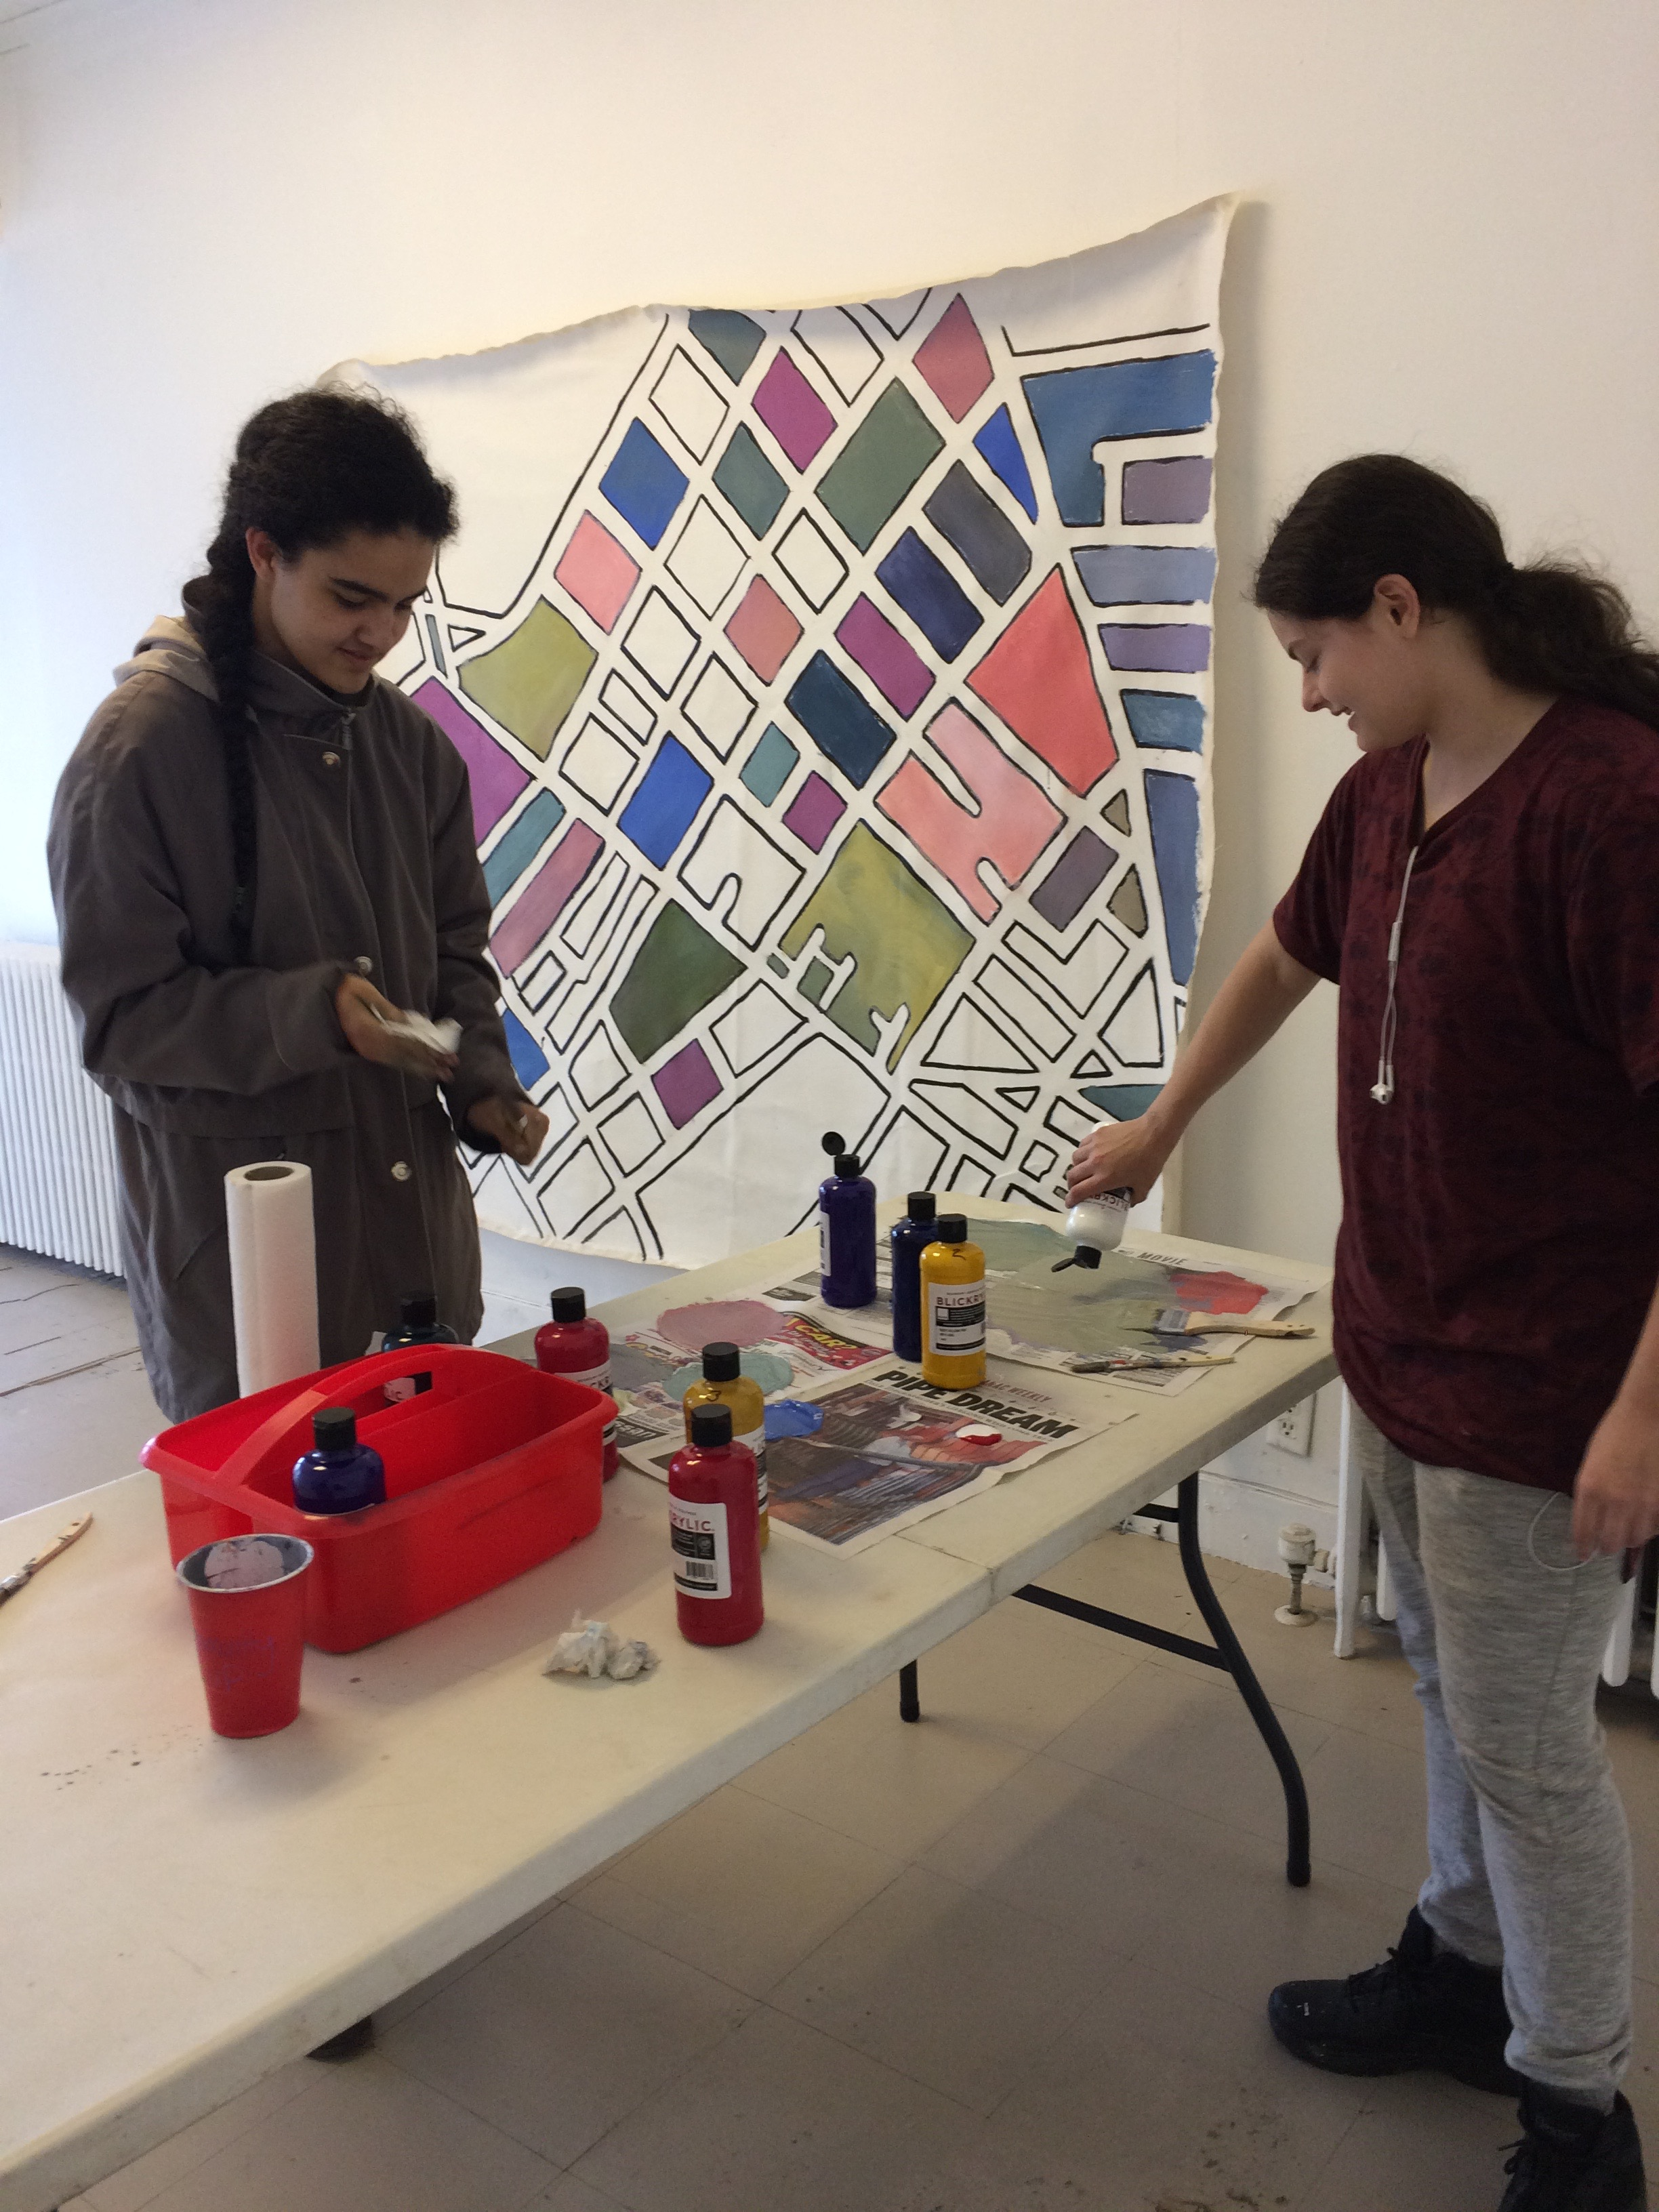 Preparing for community day mural in our new project space.